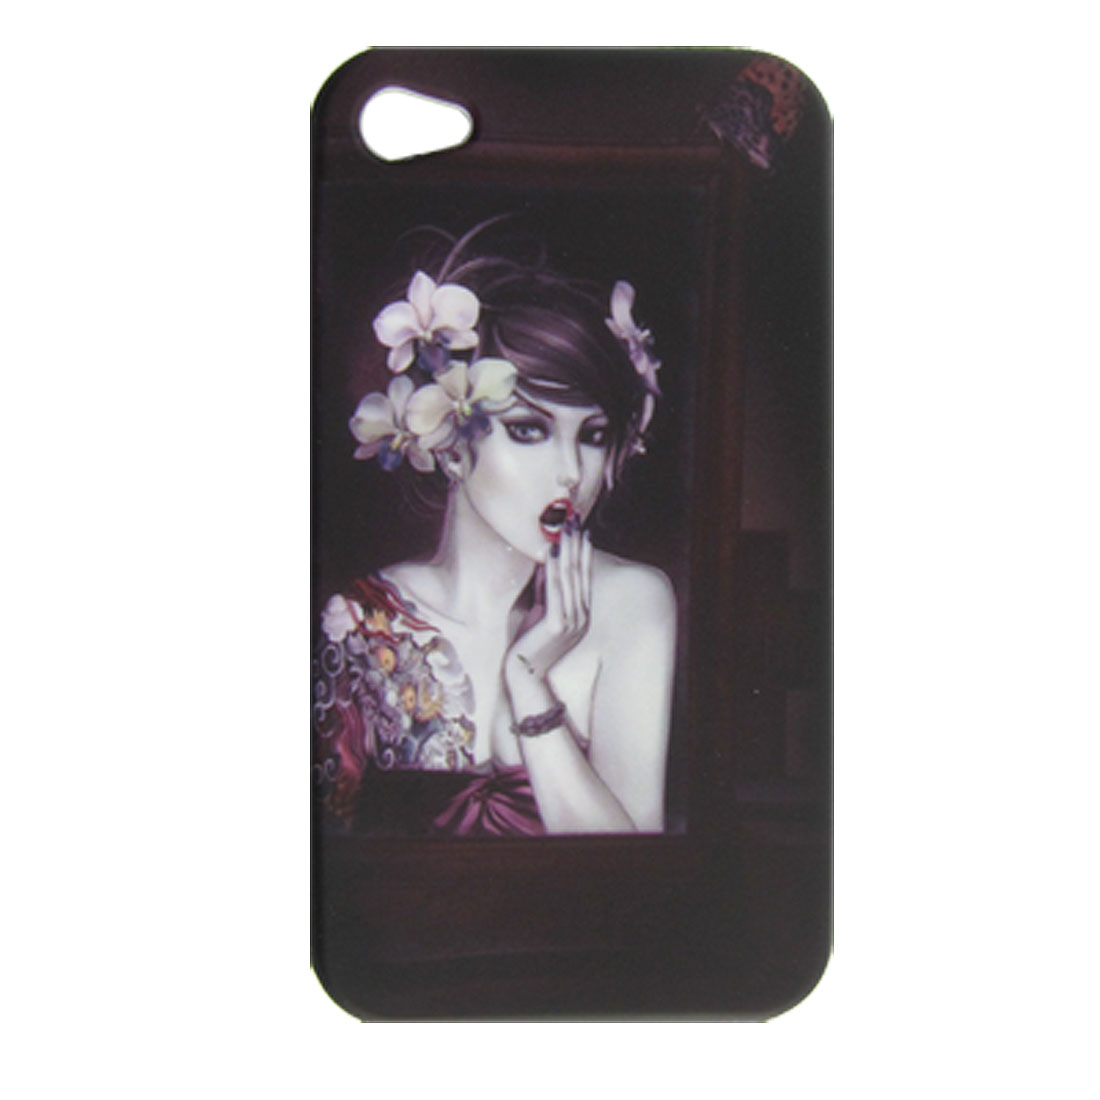 Sexy Succubae Style Soft Plastic Back Shell for iPhone 4 4G